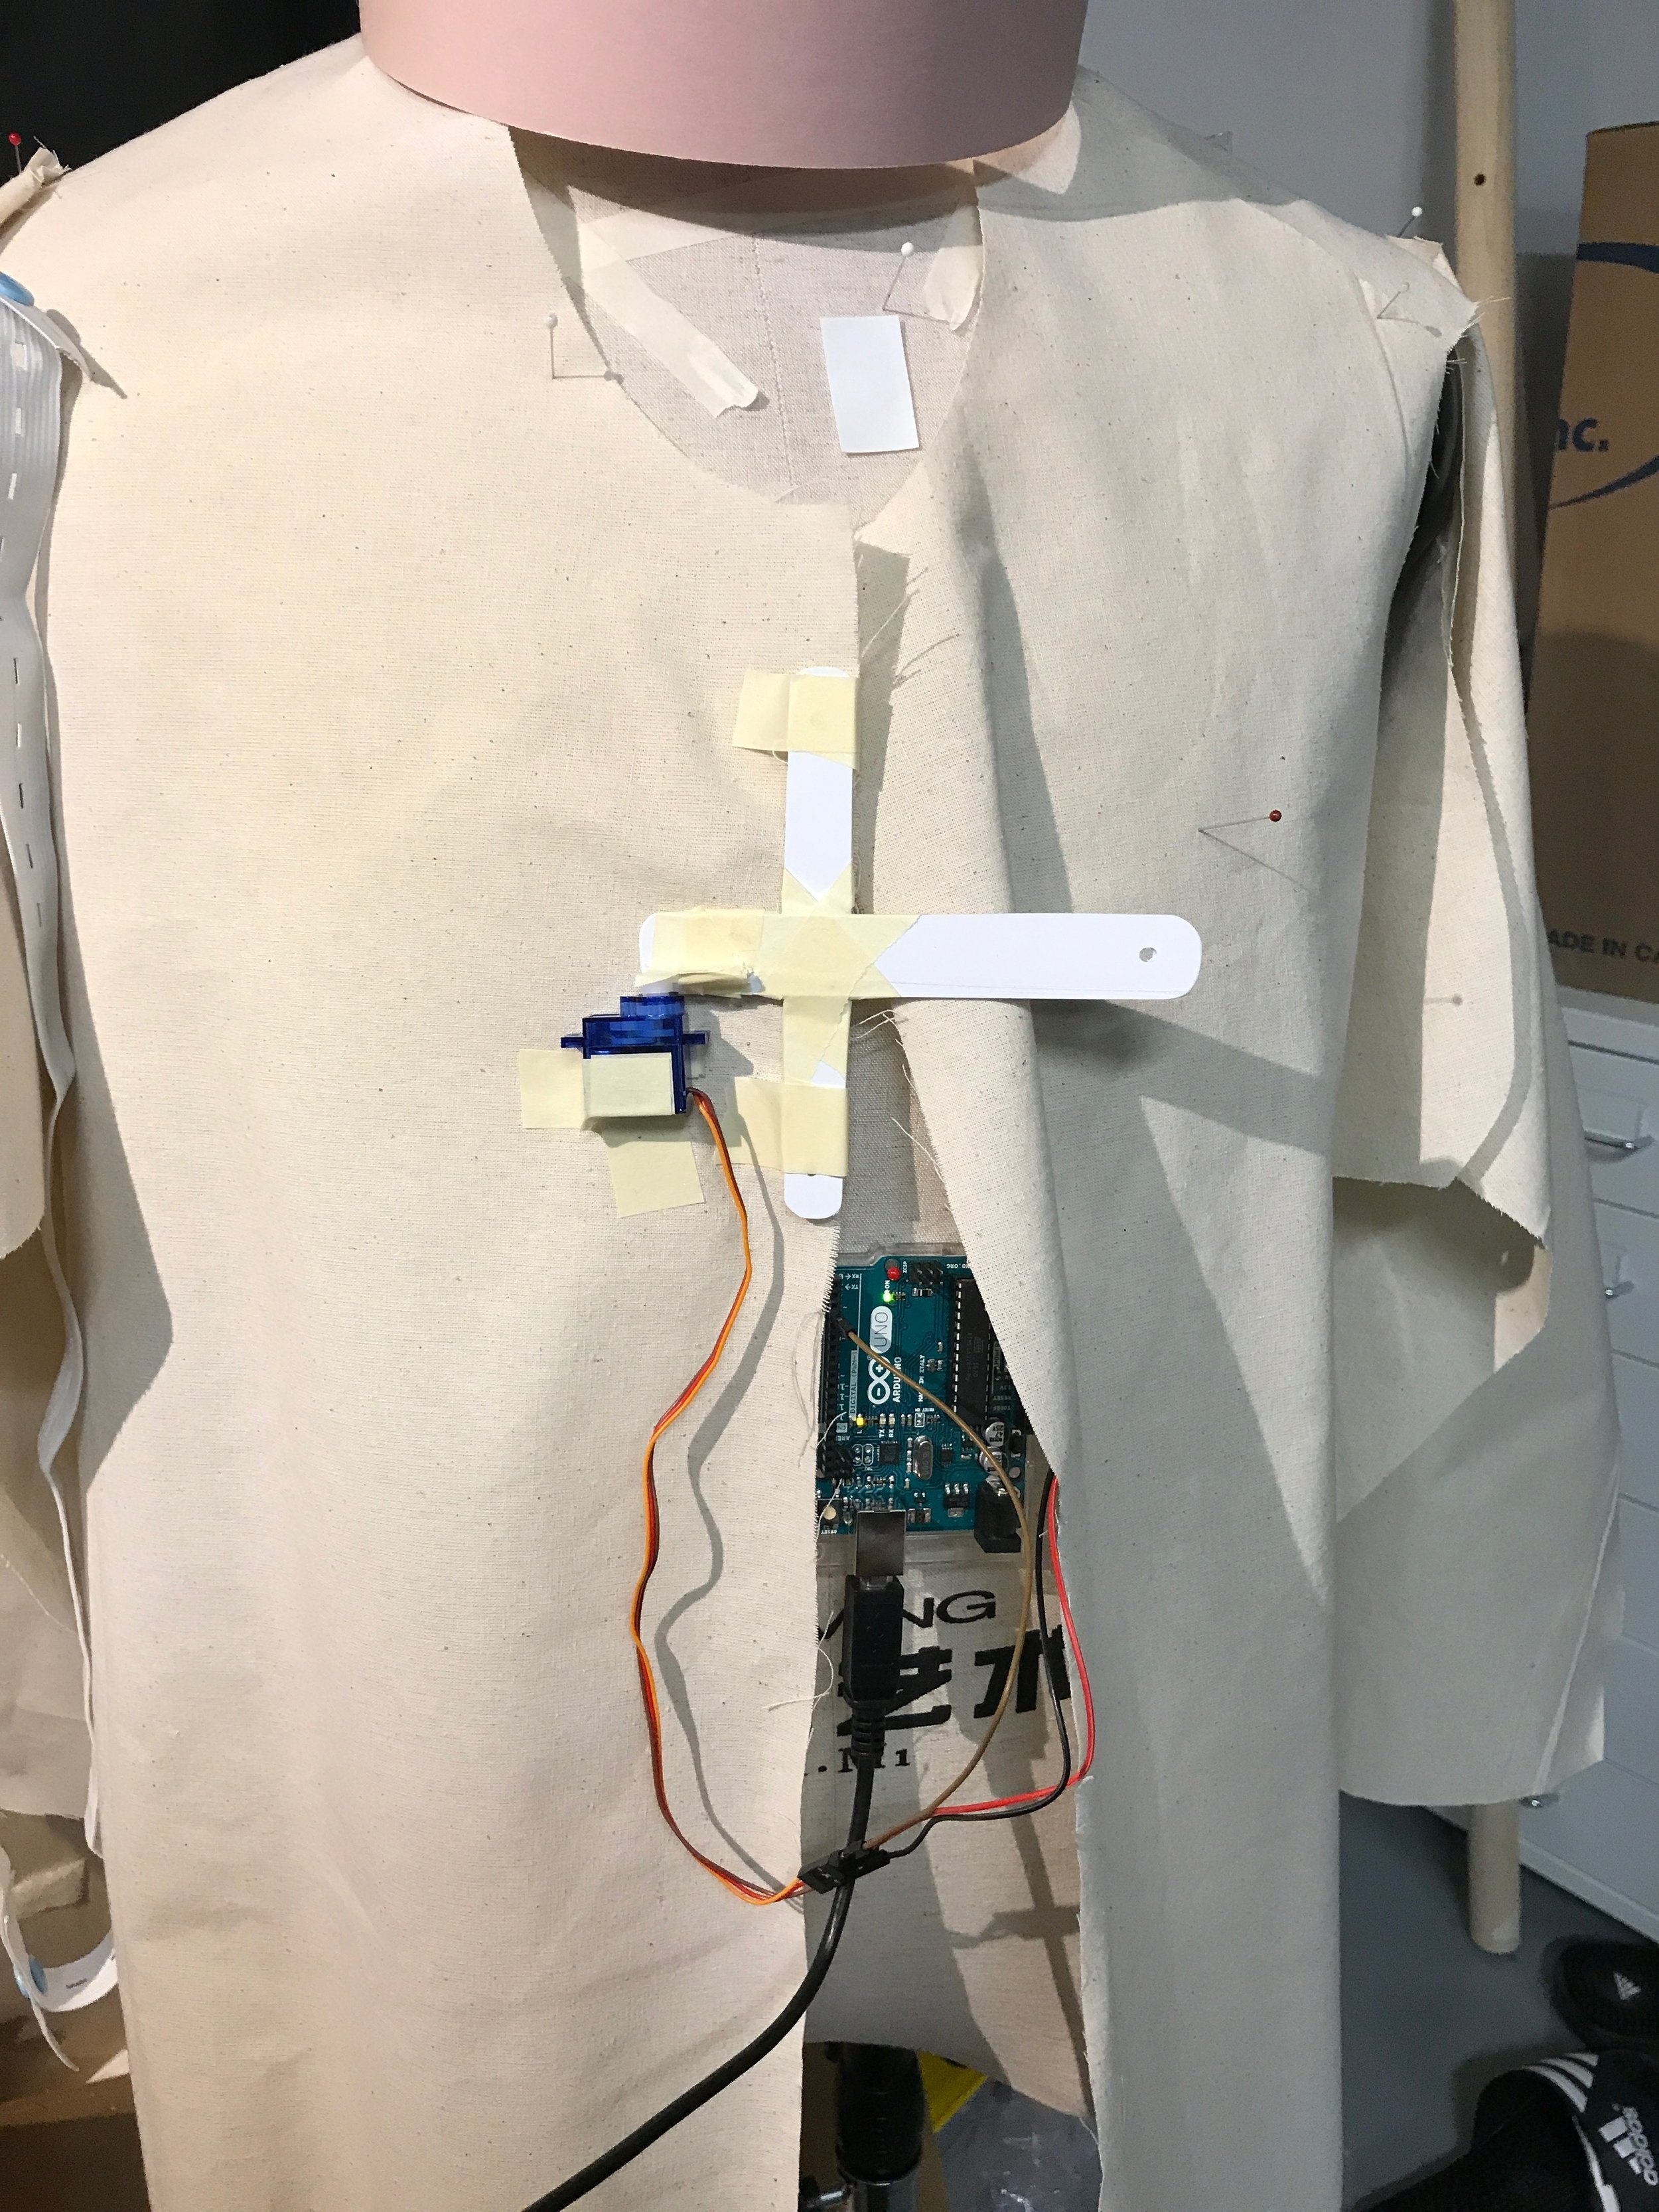 lapel mechanism prototypes were tested for optimal opening angle and speed